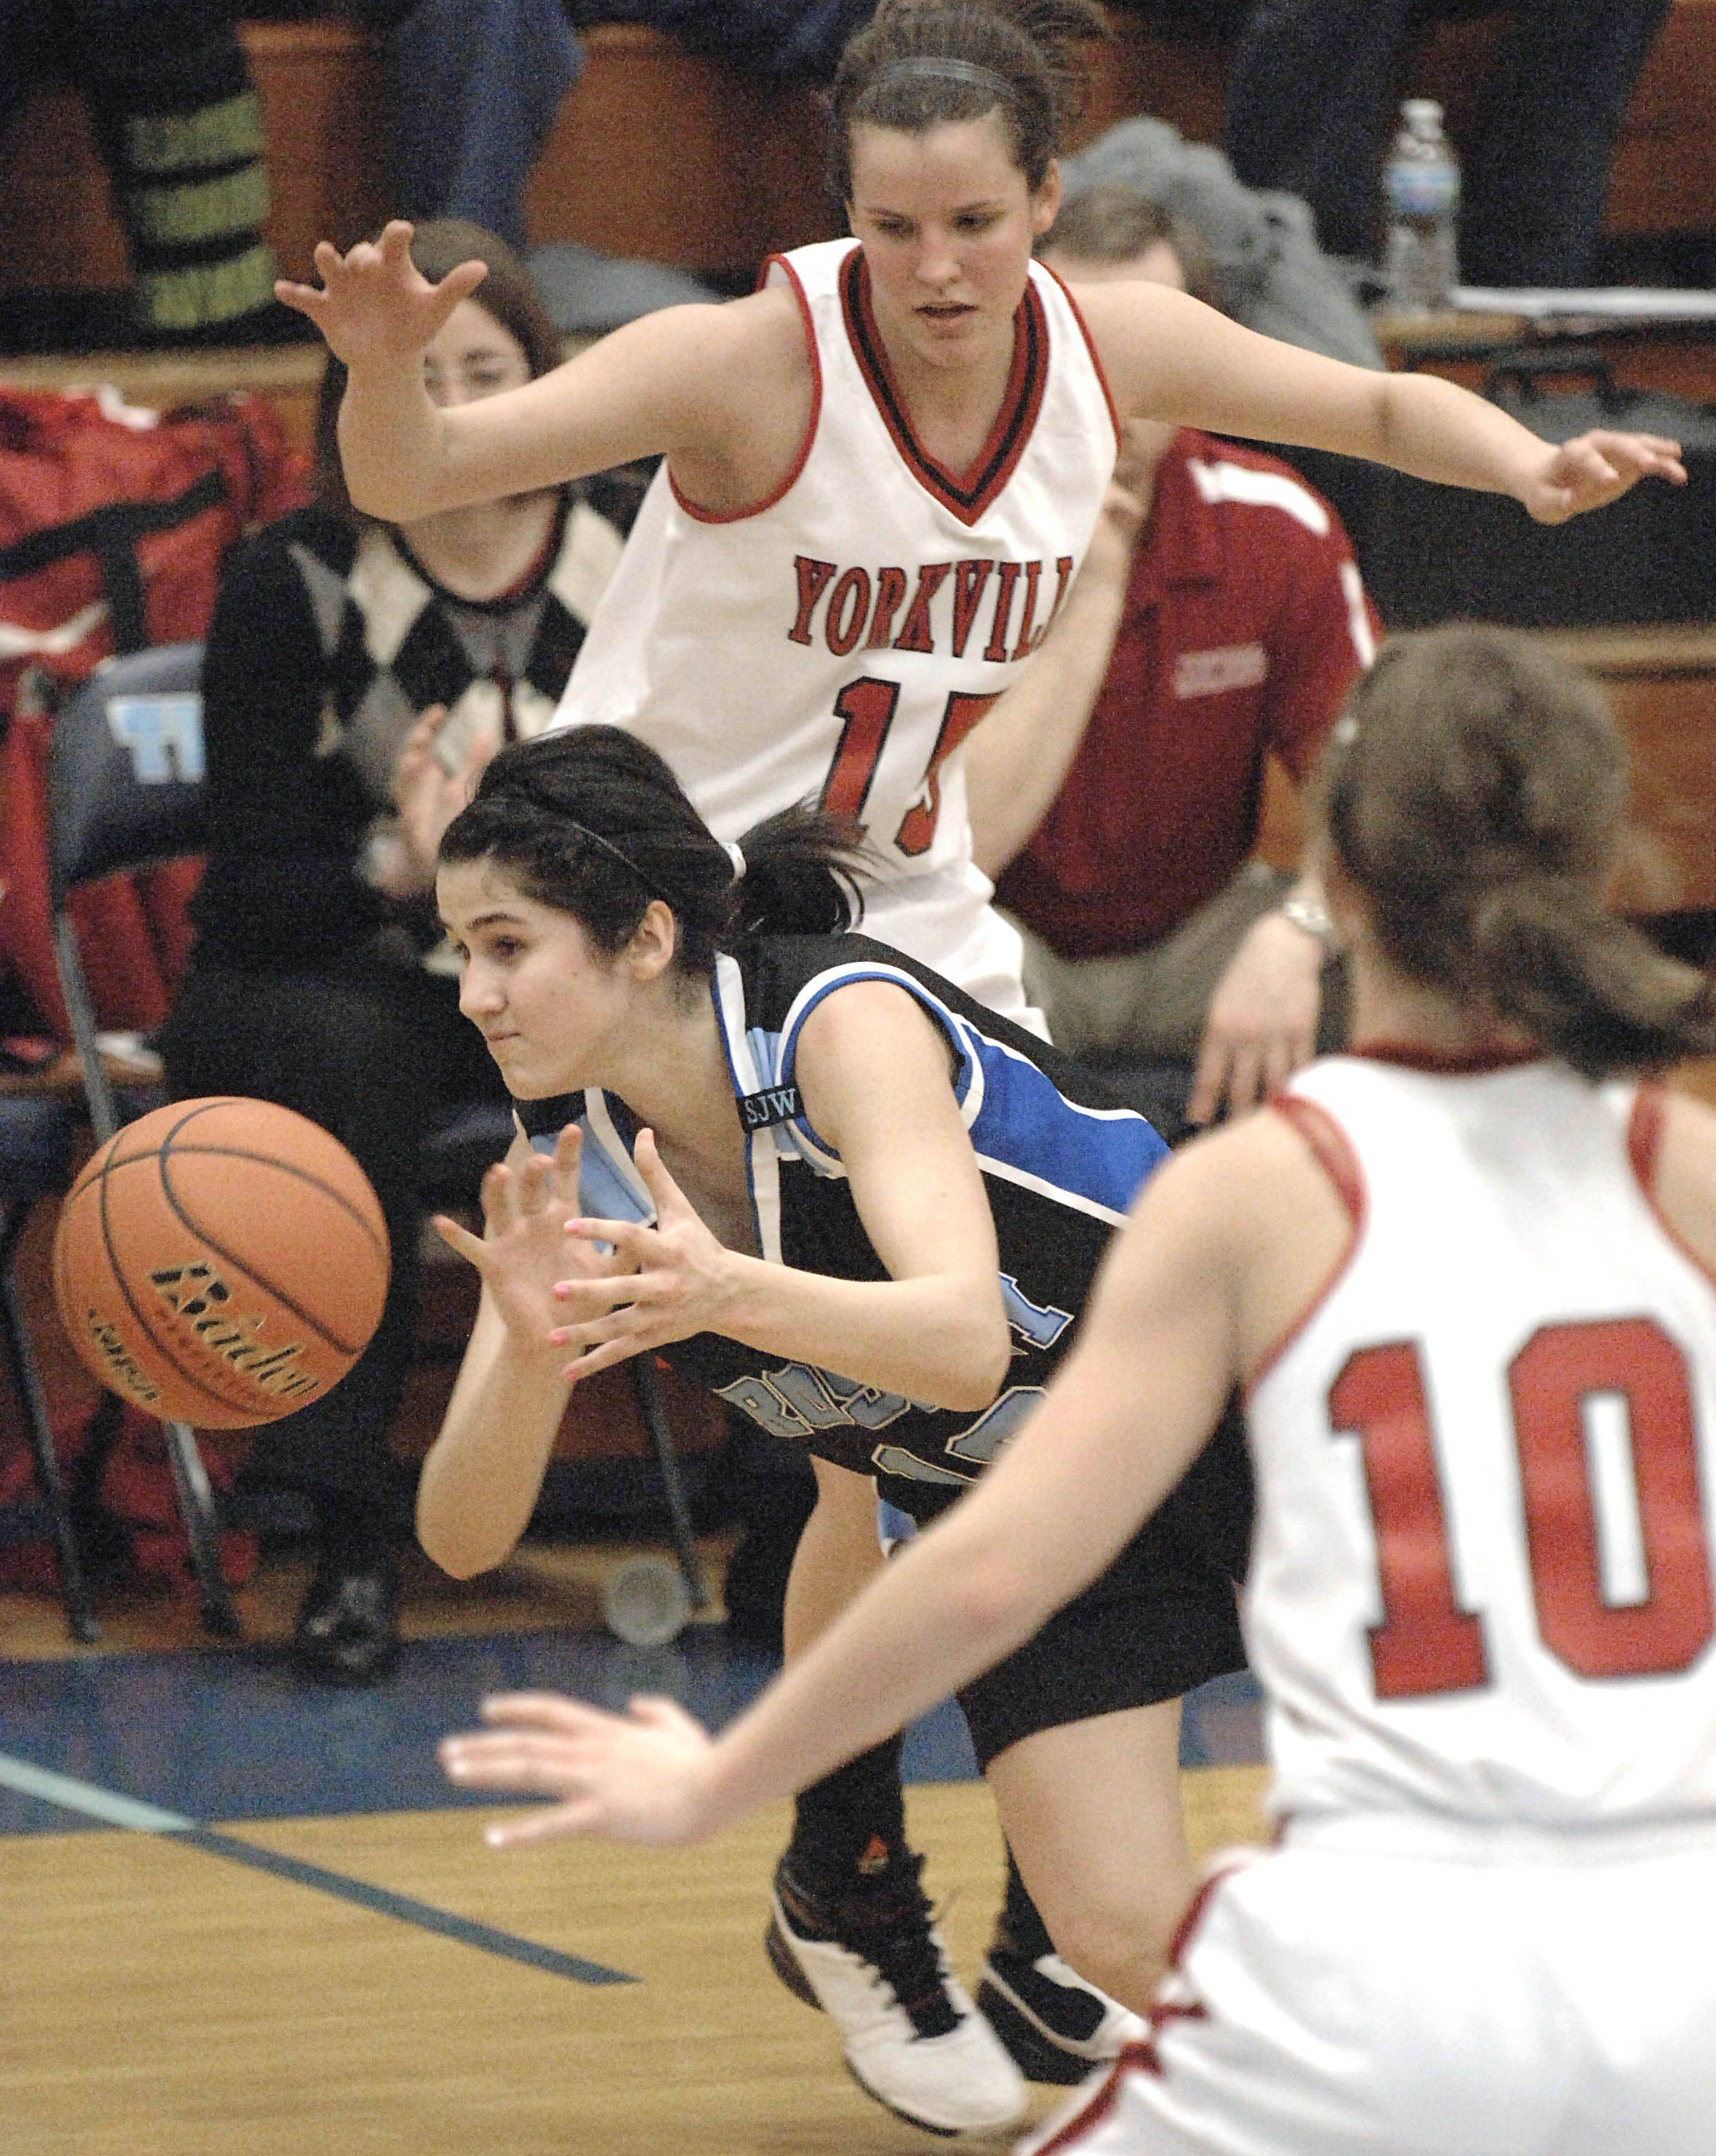 Rosary's Brenda Rocha loses control of the ball while on the way to the hoop with Yorkville's Jordann Dhuse and Cara Schlichting.